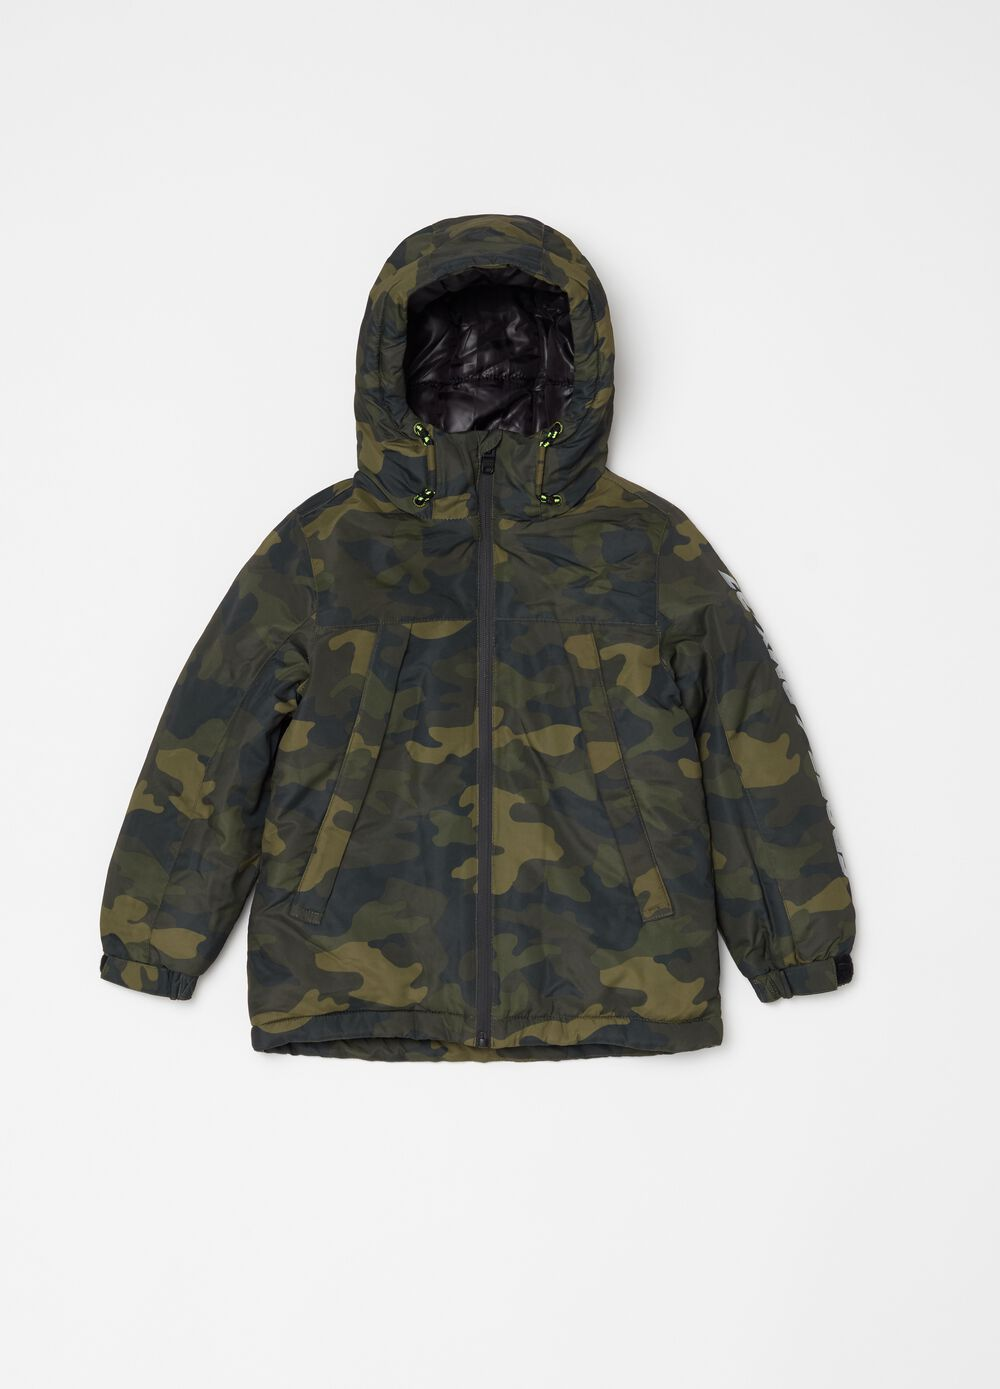 Padded jacket with camouflage pattern